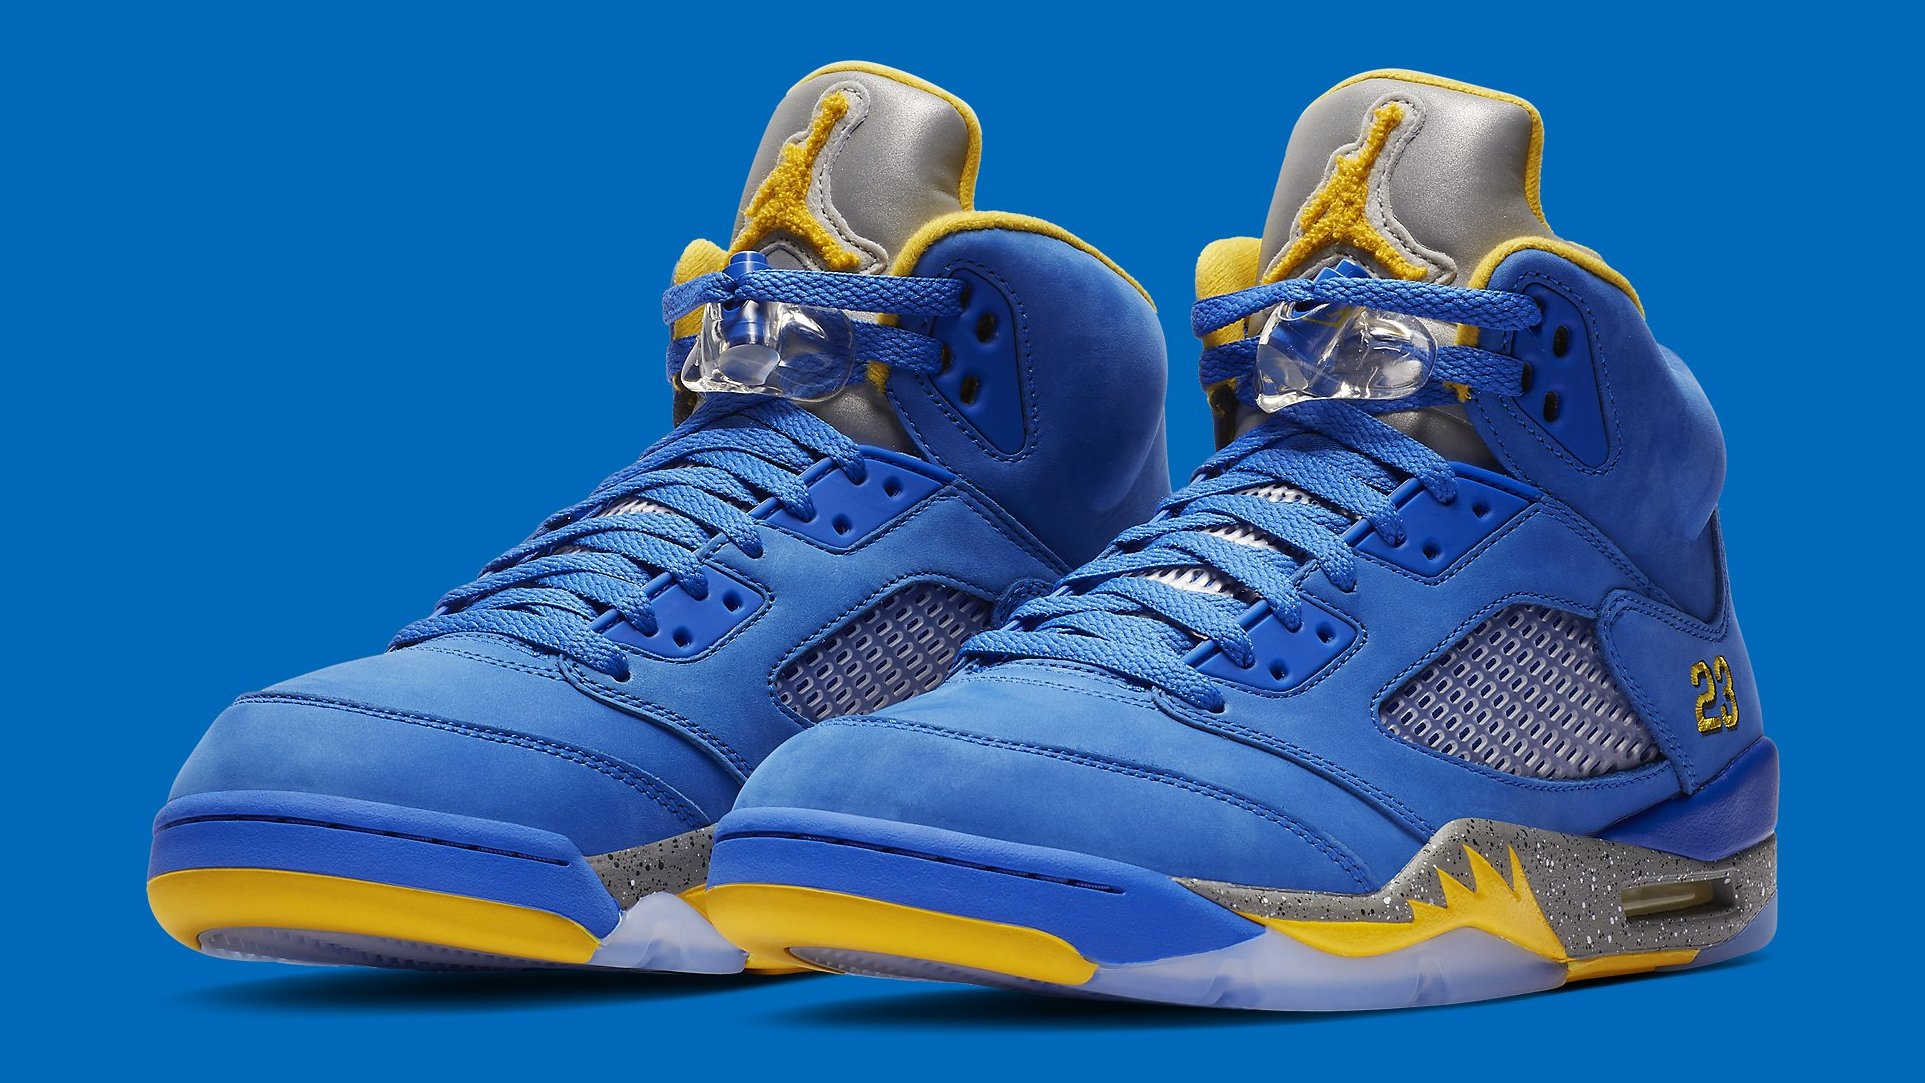 on sale 385c9 55072 Release Date for the 2019  Laney  Air Jordan 5s Has Been Pushed Back